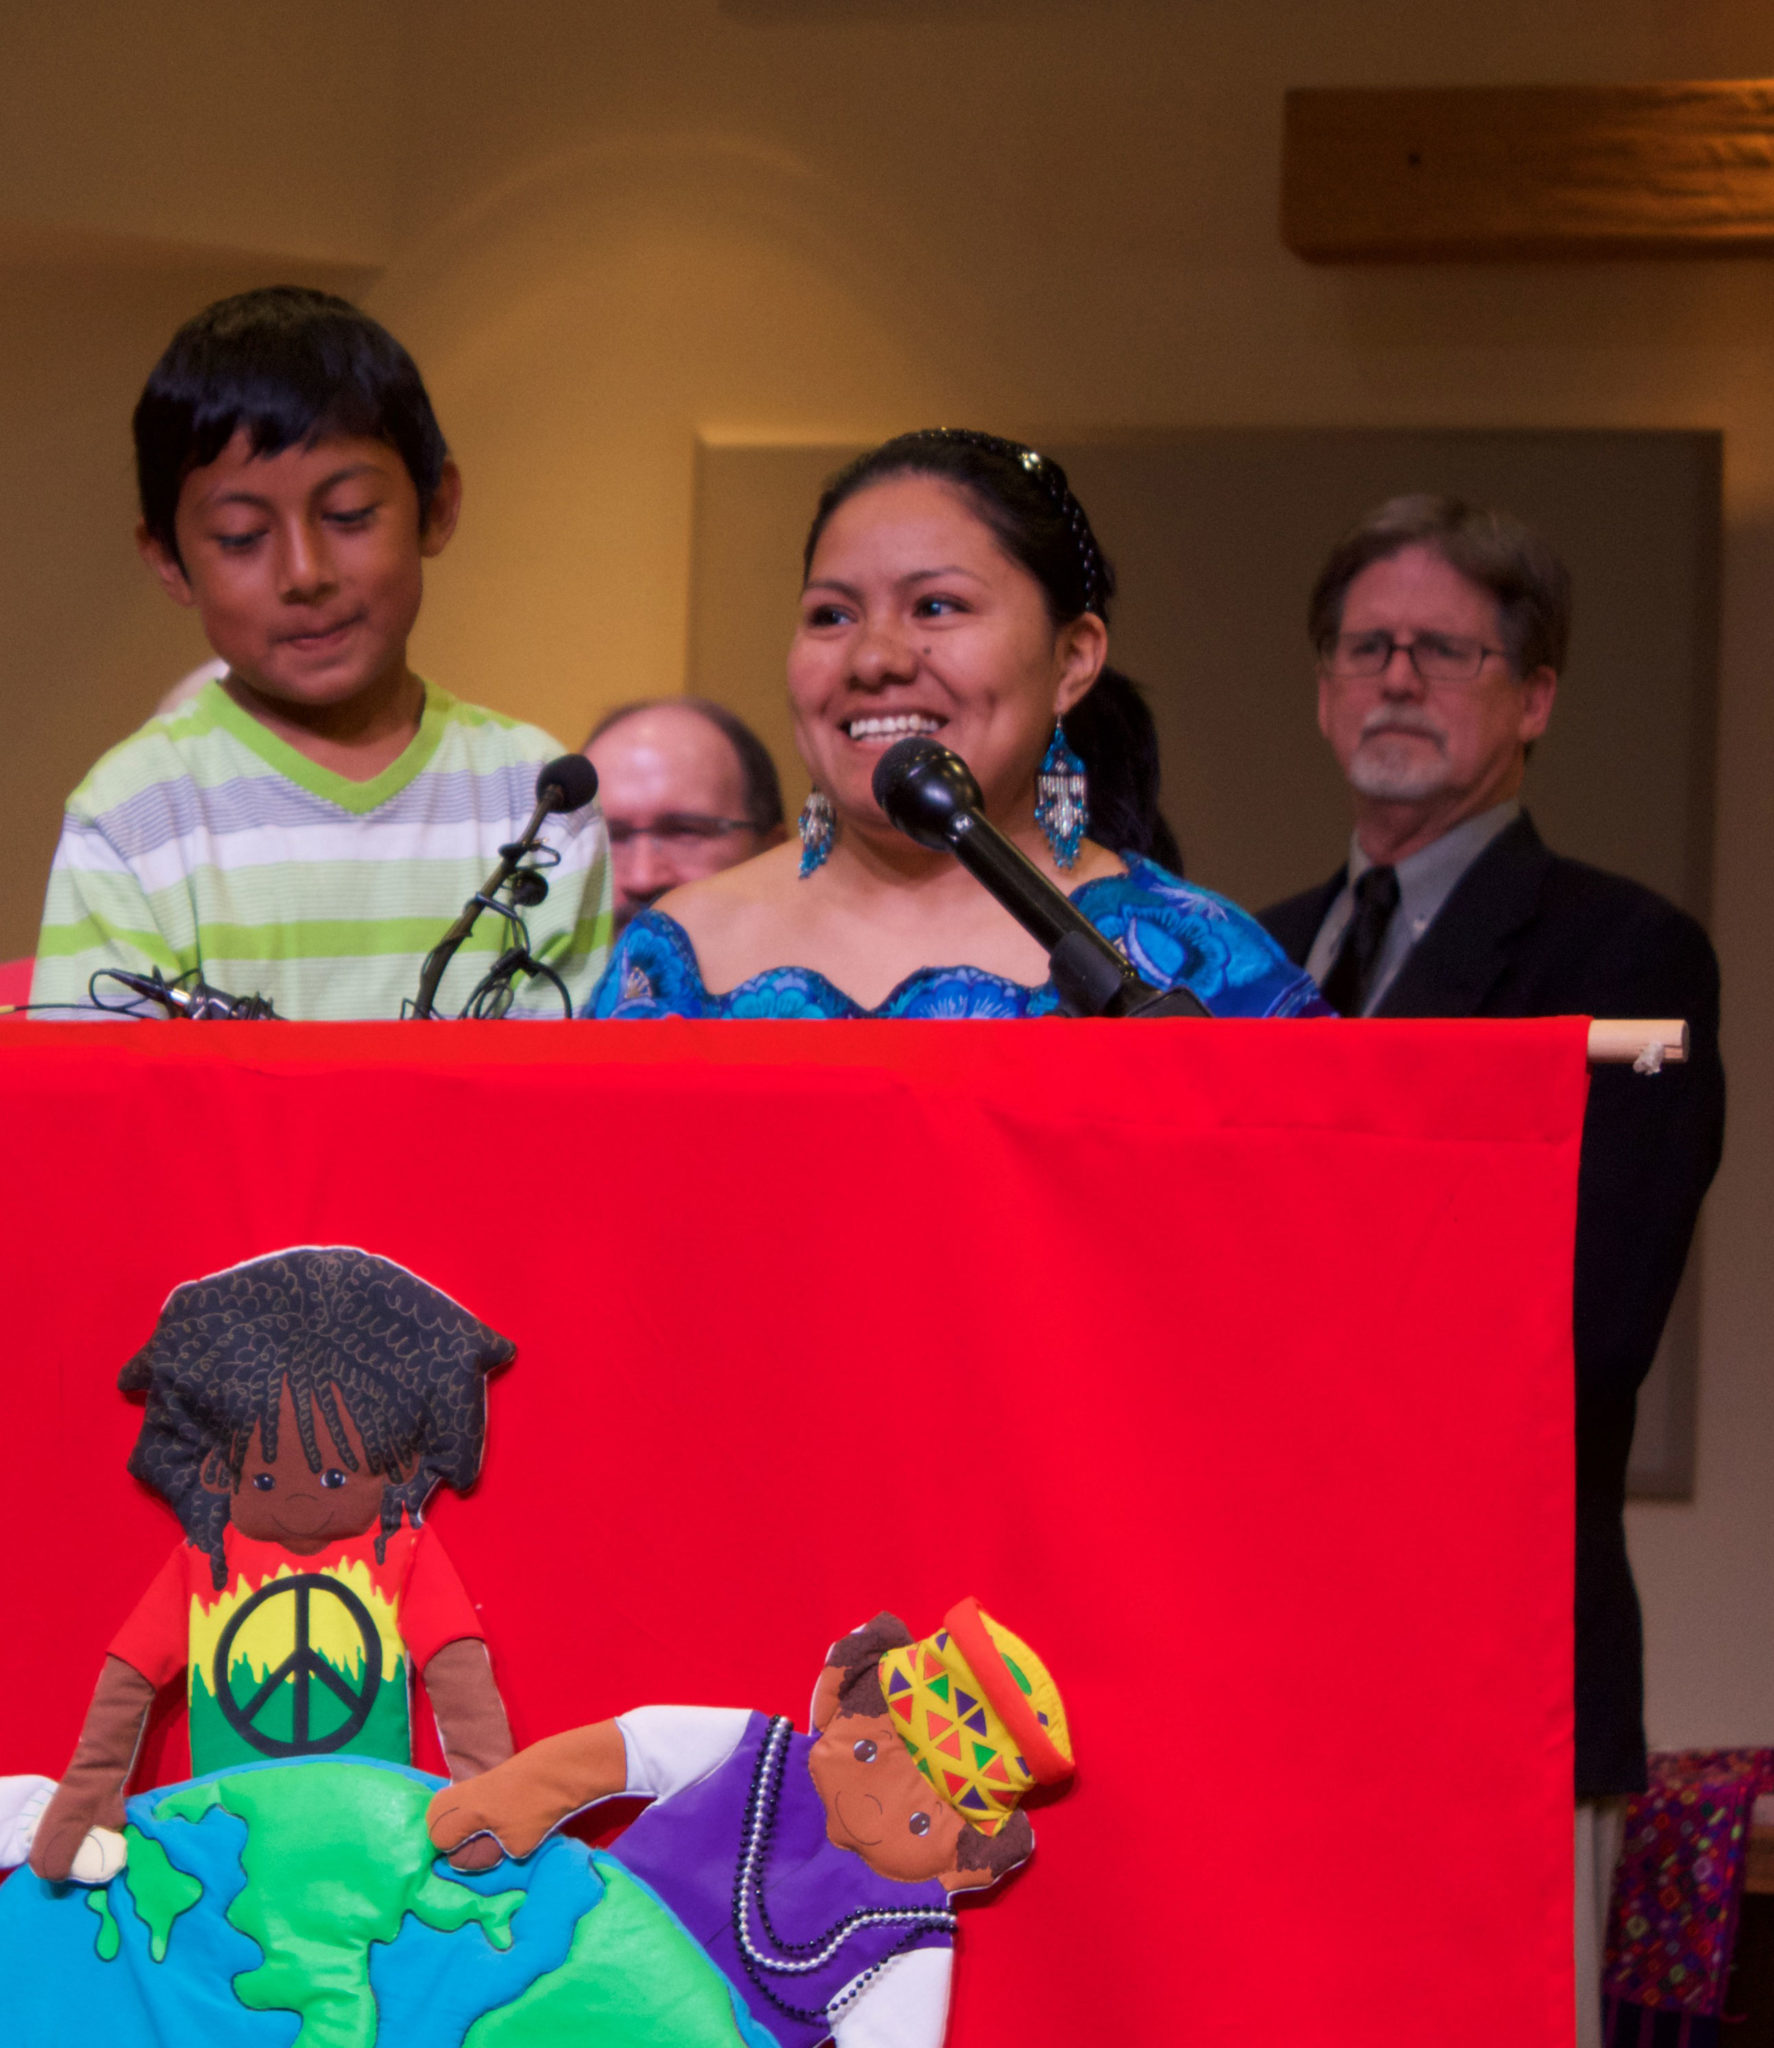 Hilda Ramirez with son, Ivan, and Alejandro Caceres of Grassroots Leadership during Tuesday's Press Conference at St. Andrew's Presbyterian Church of Austin